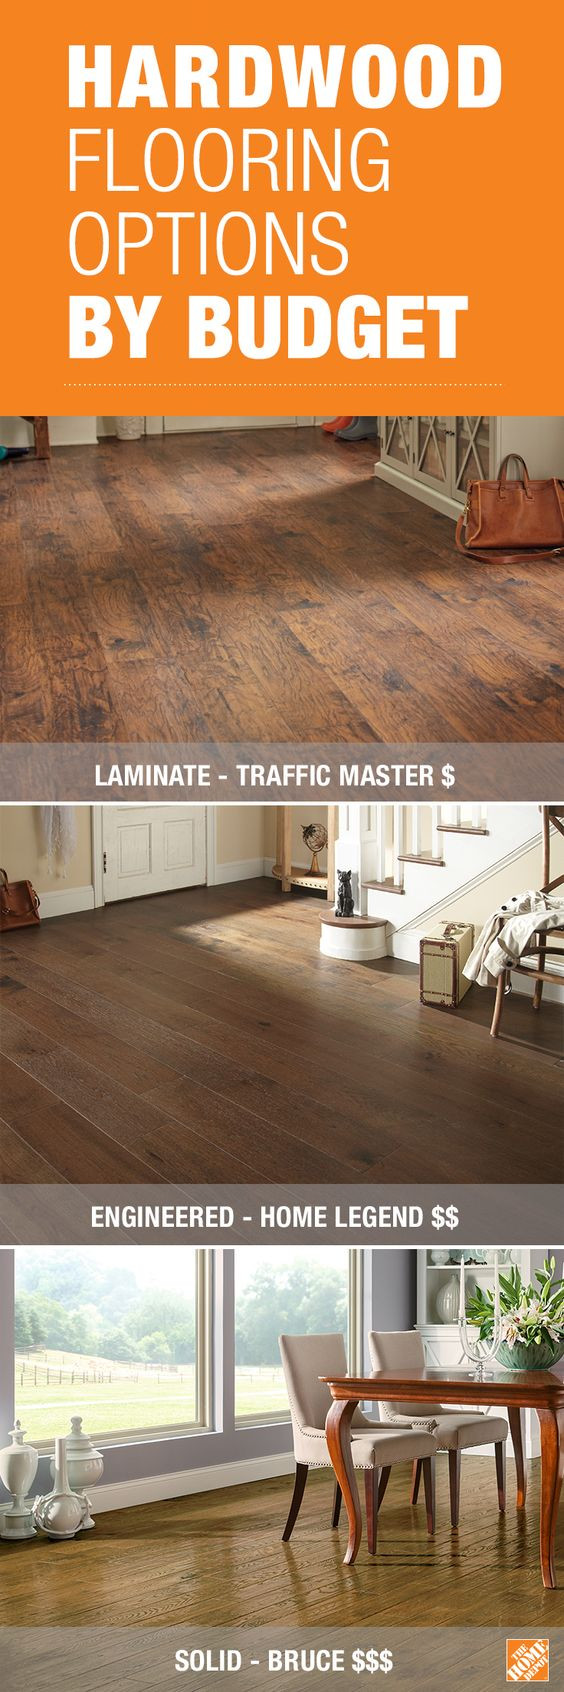 cost of laminate flooring vs hardwood of no matter your budget with todays flooring you have several good intended for the new types of laminate flooring give you an authentic wood look thats very affordable engineered hardwood costs a little